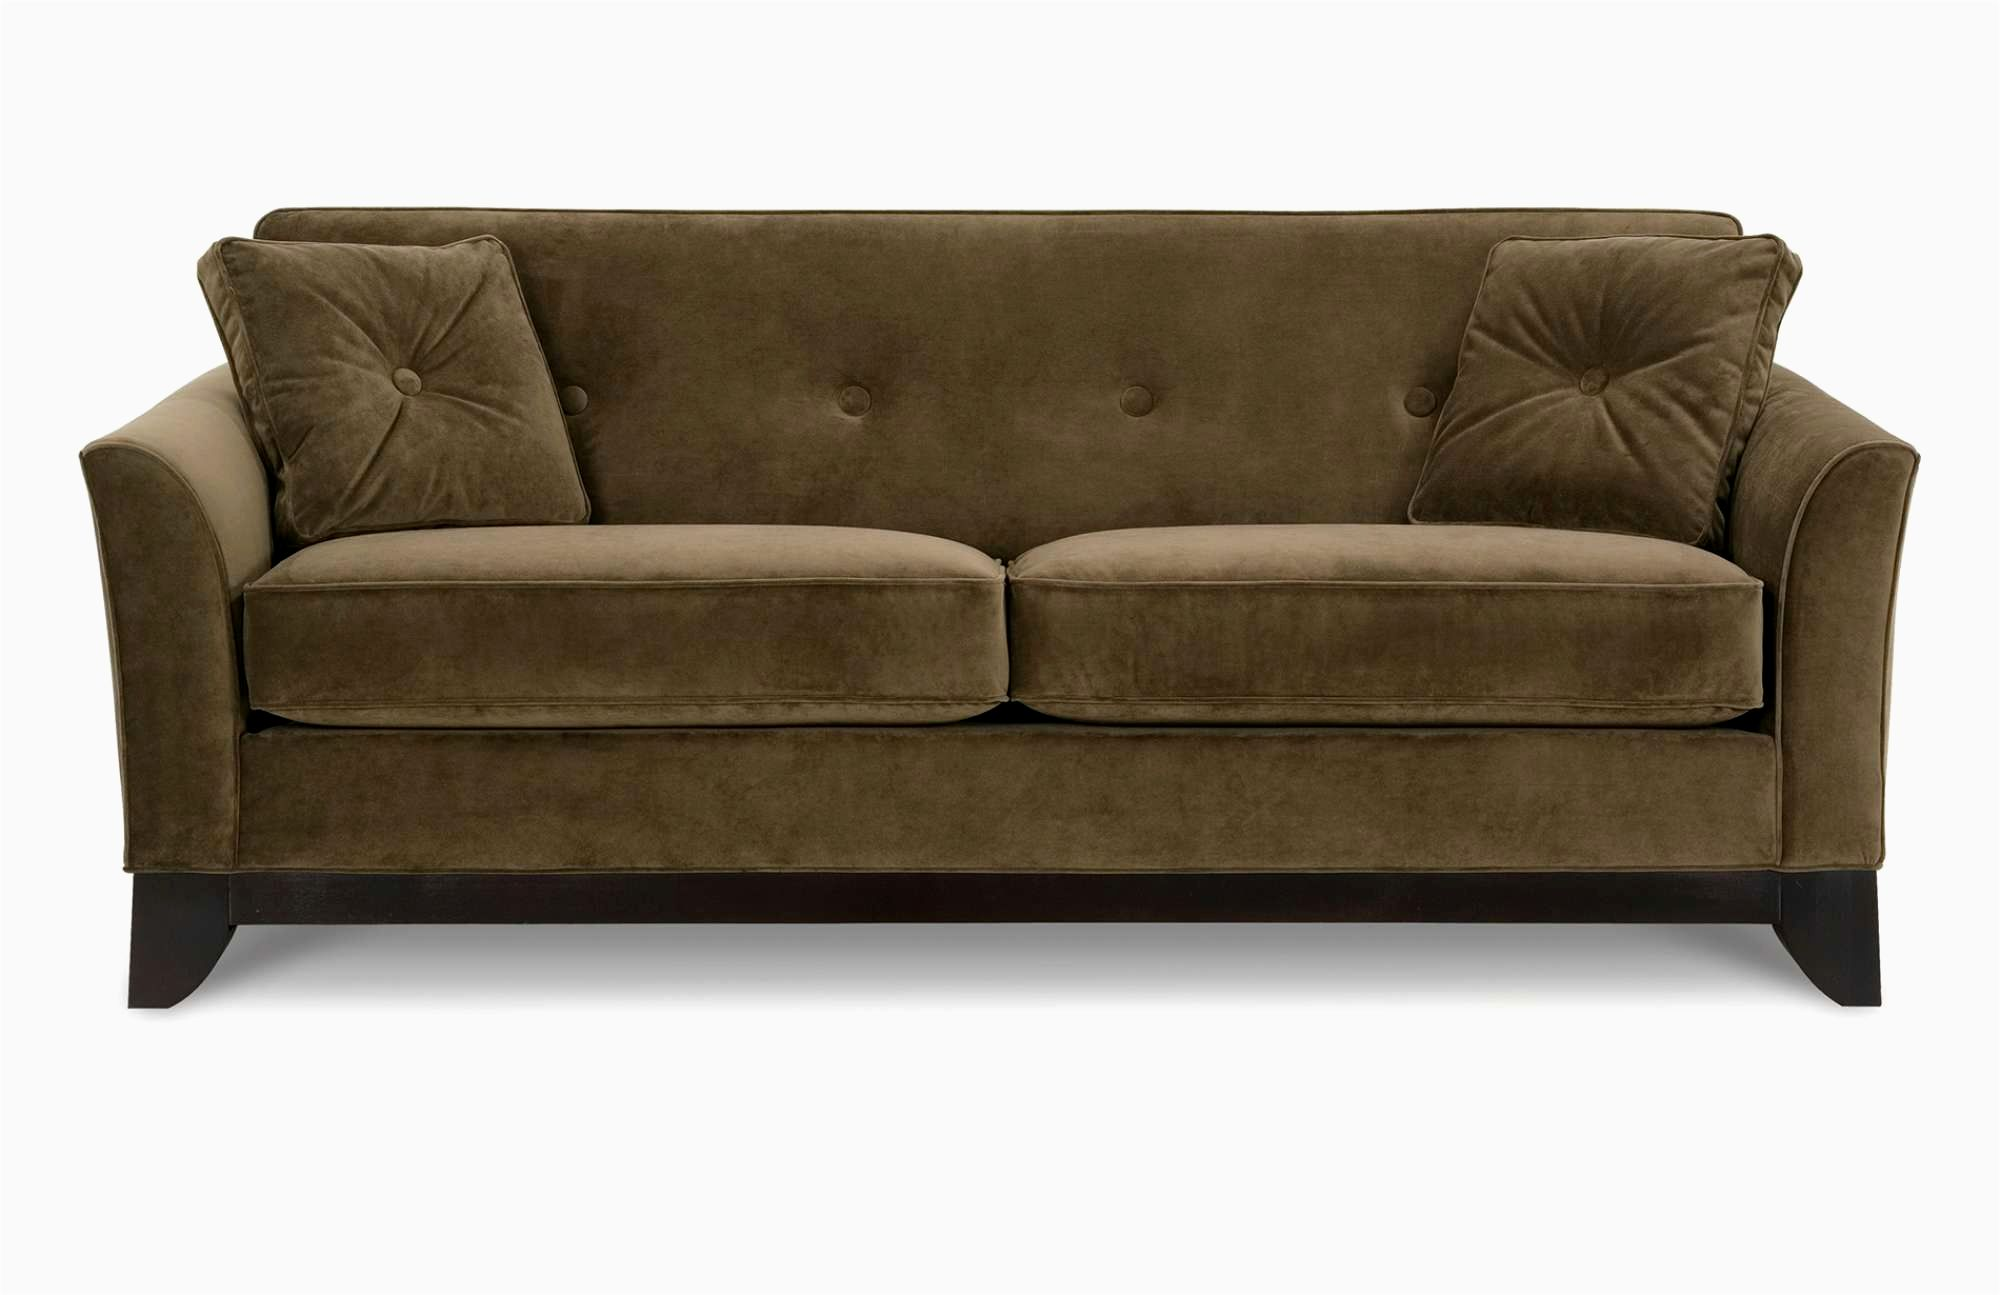 elegant slipcover for sofa photograph-Contemporary Slipcover for sofa Image